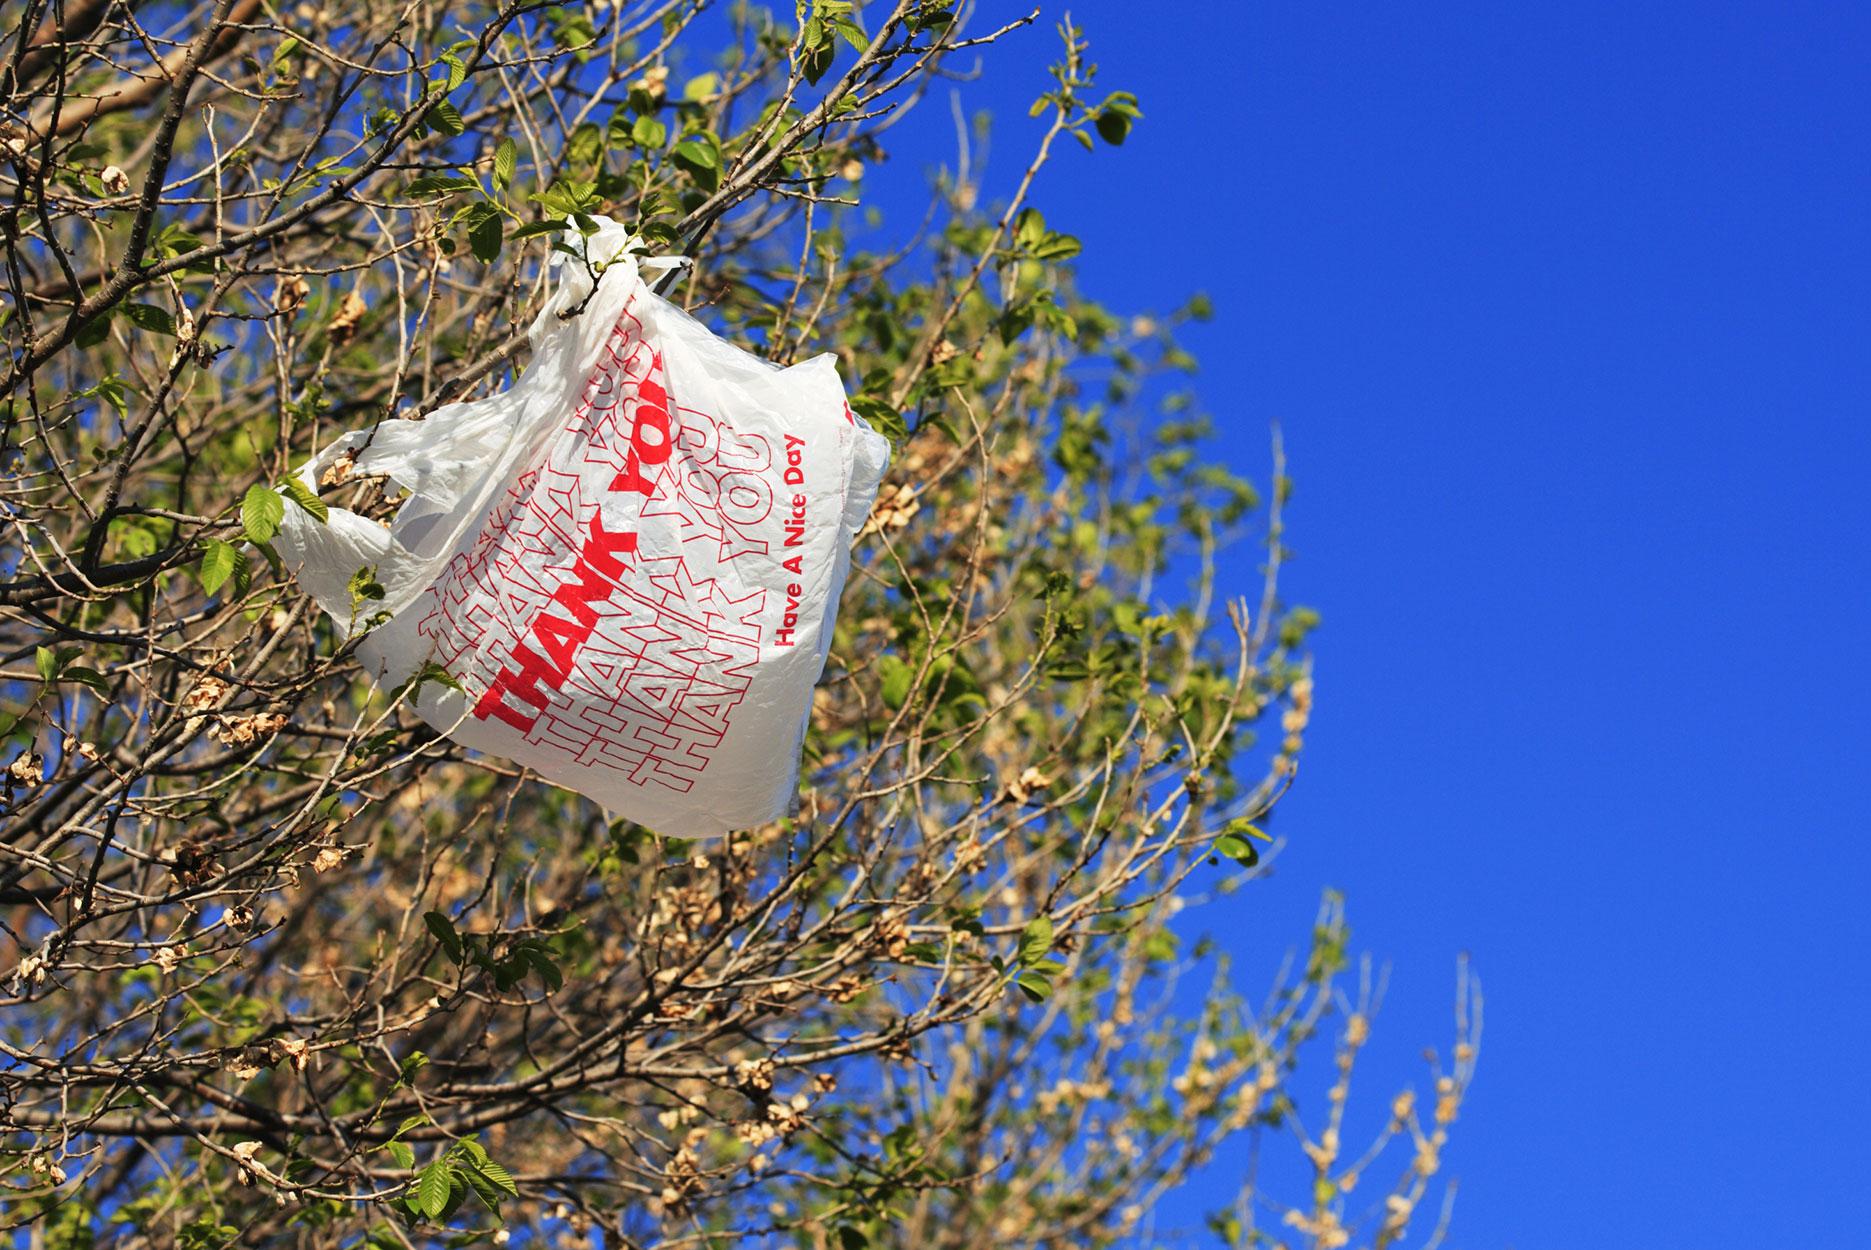 A plastic shopping bag caught in a tree